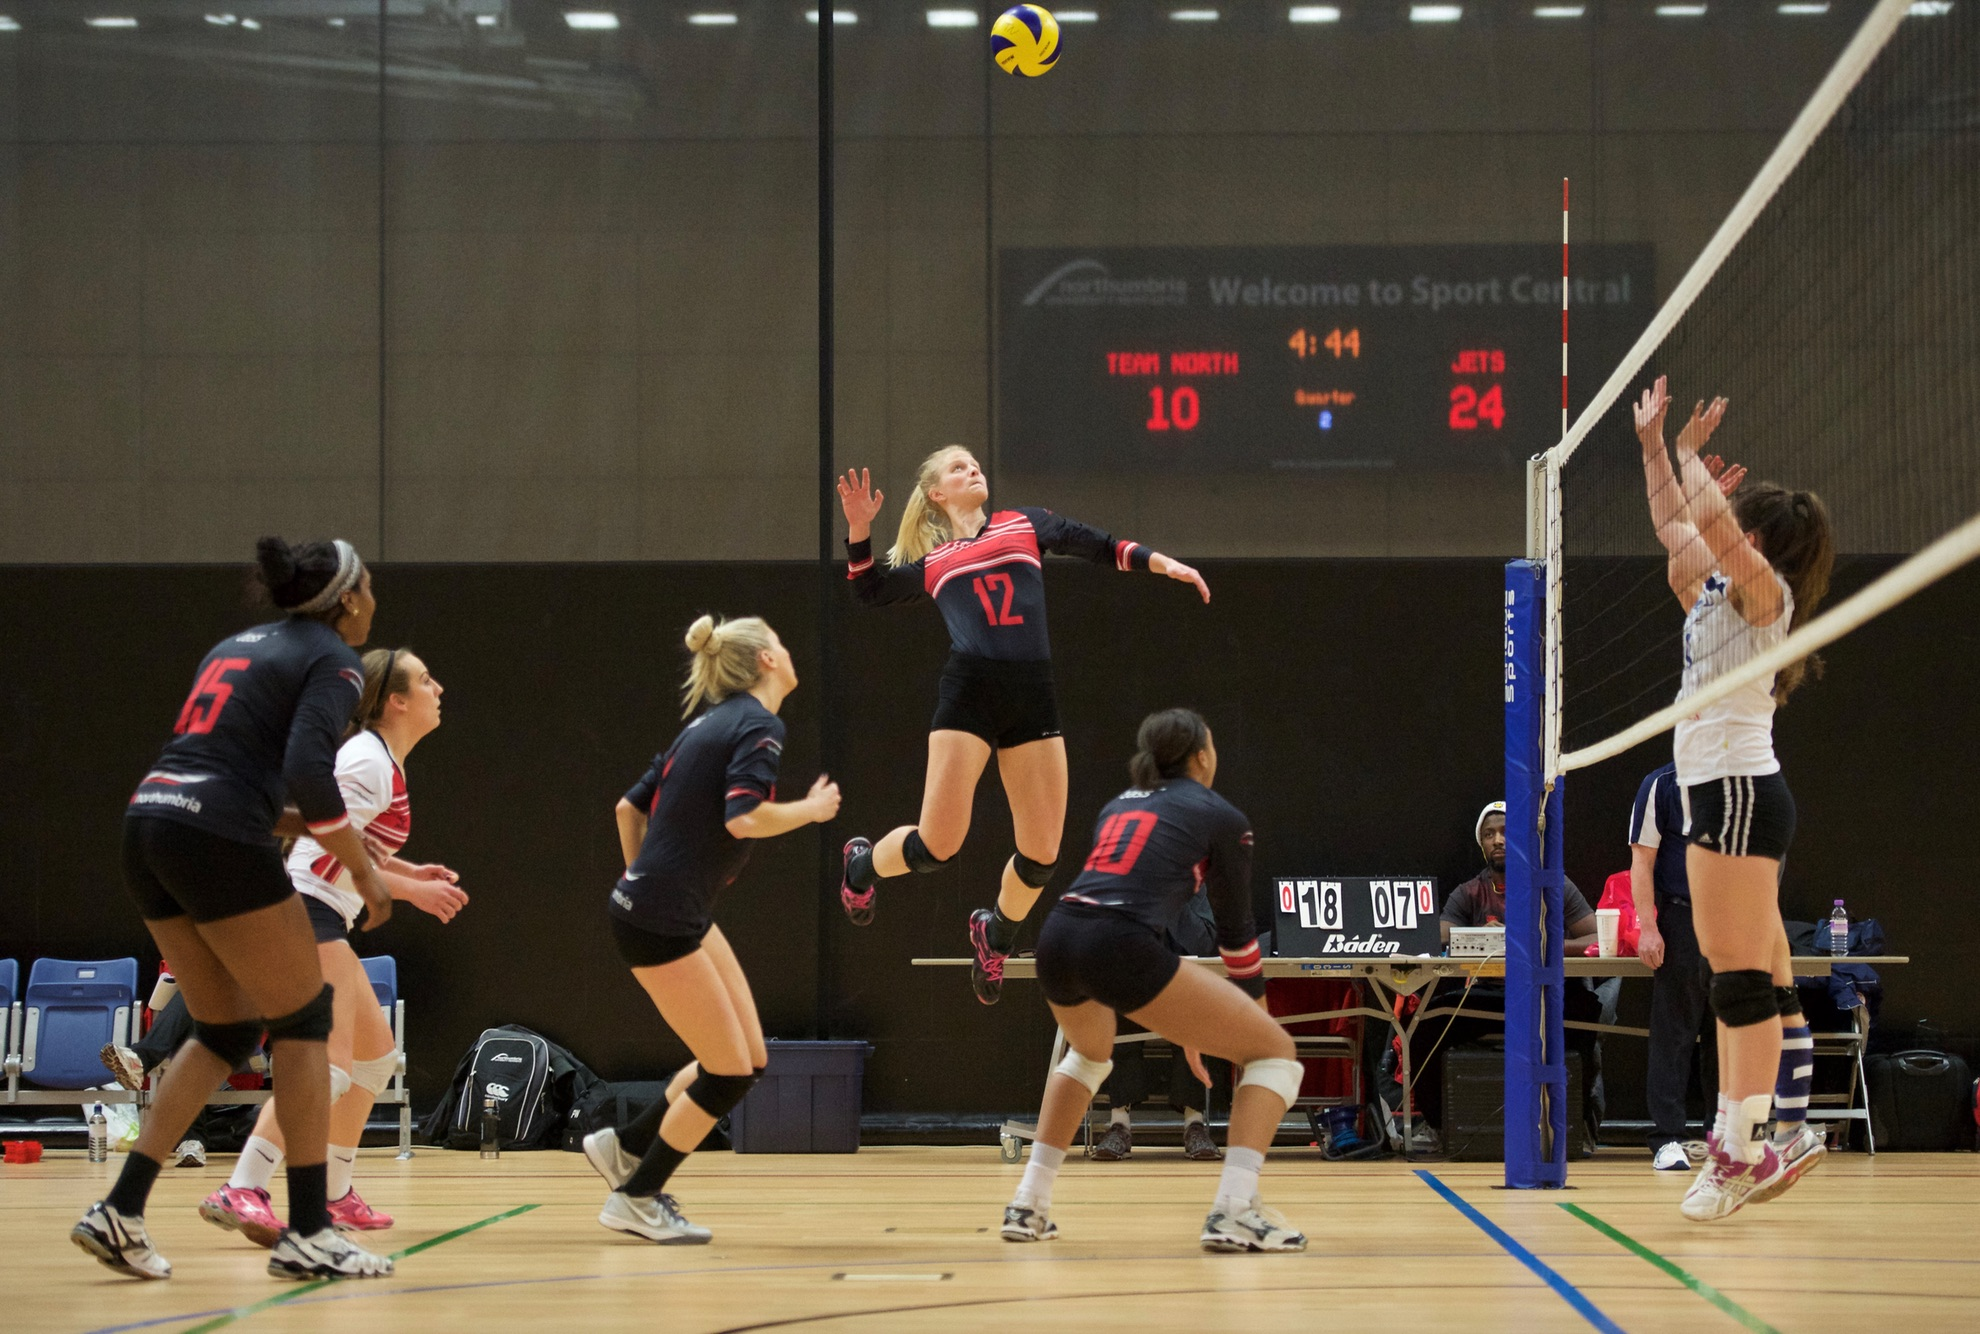 Four-some Northumbria Put Rivals To Sword